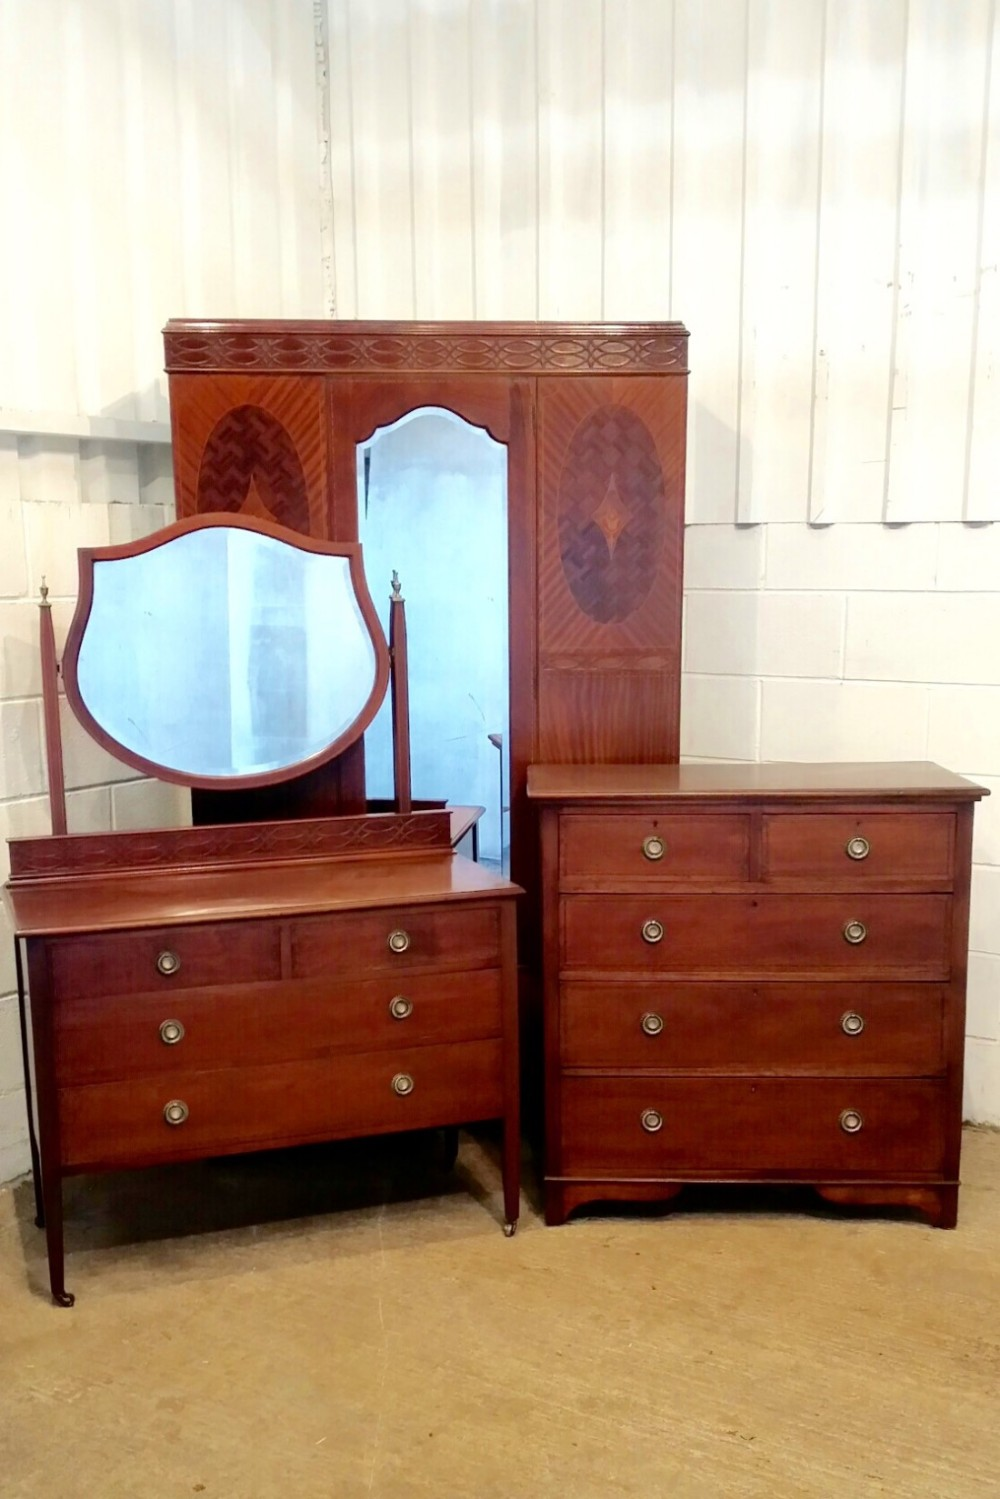 Modern Mahogany Bedroom Furniture: Antique Edwardian Mahogany Inlaid Bedroom Suite C1900